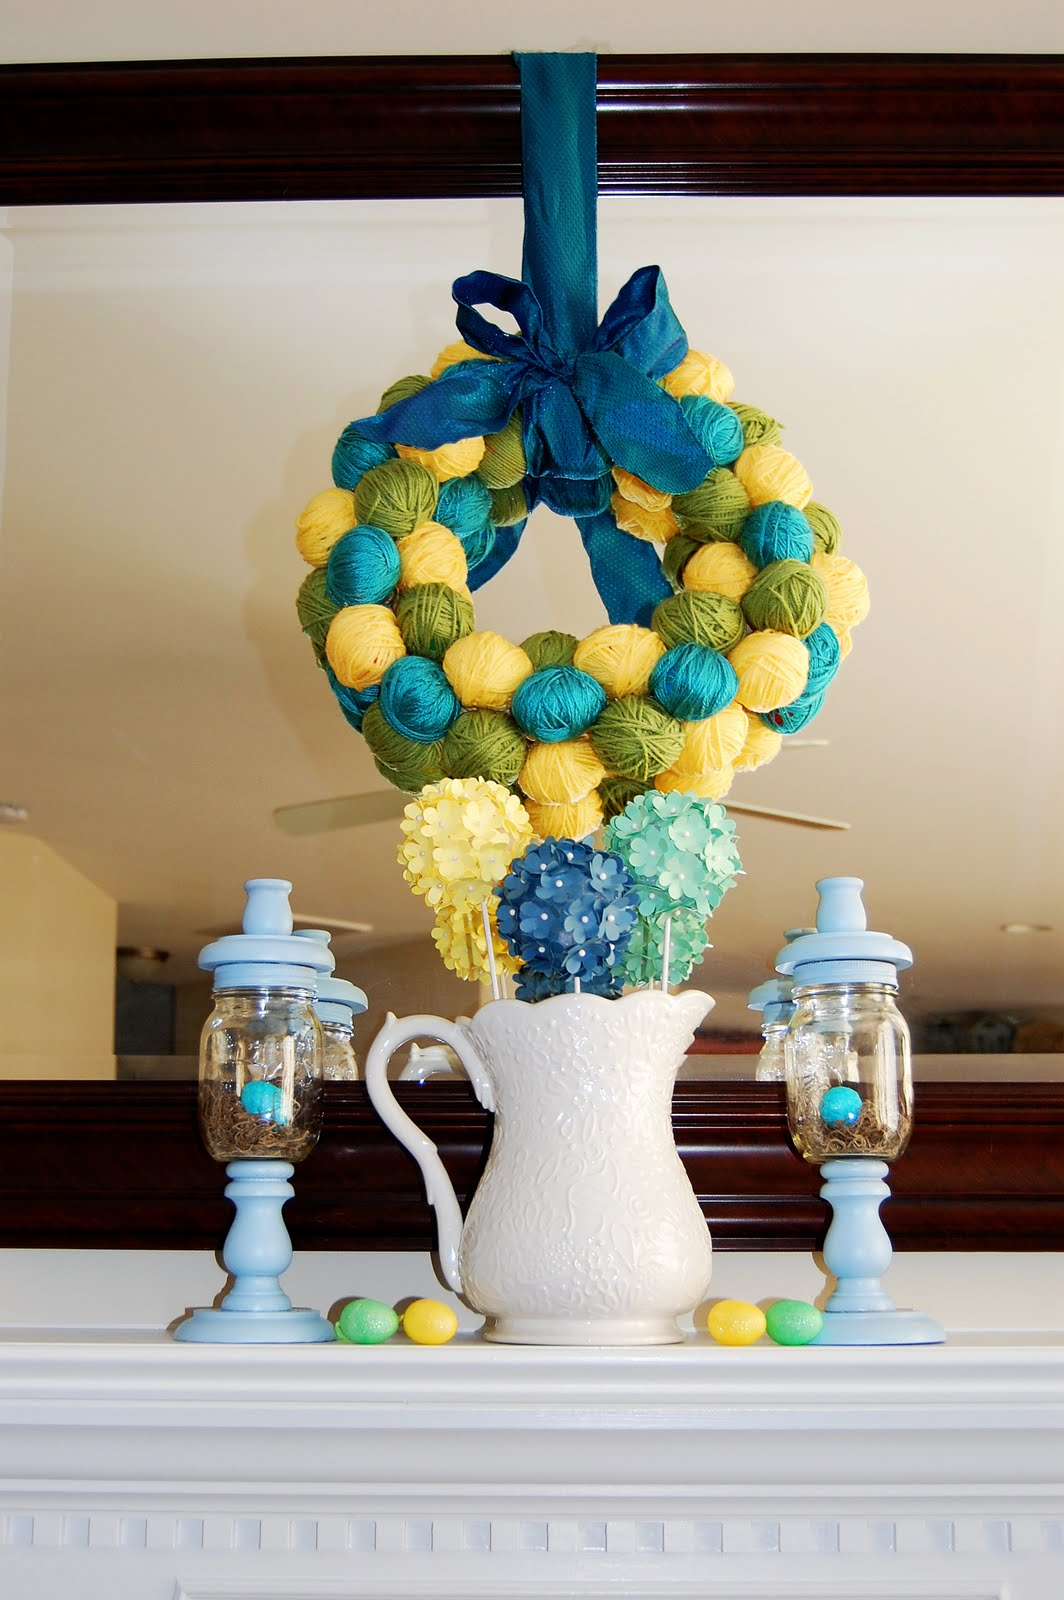 41 fashionable ideas to decorate your home for easter for Www decorations home